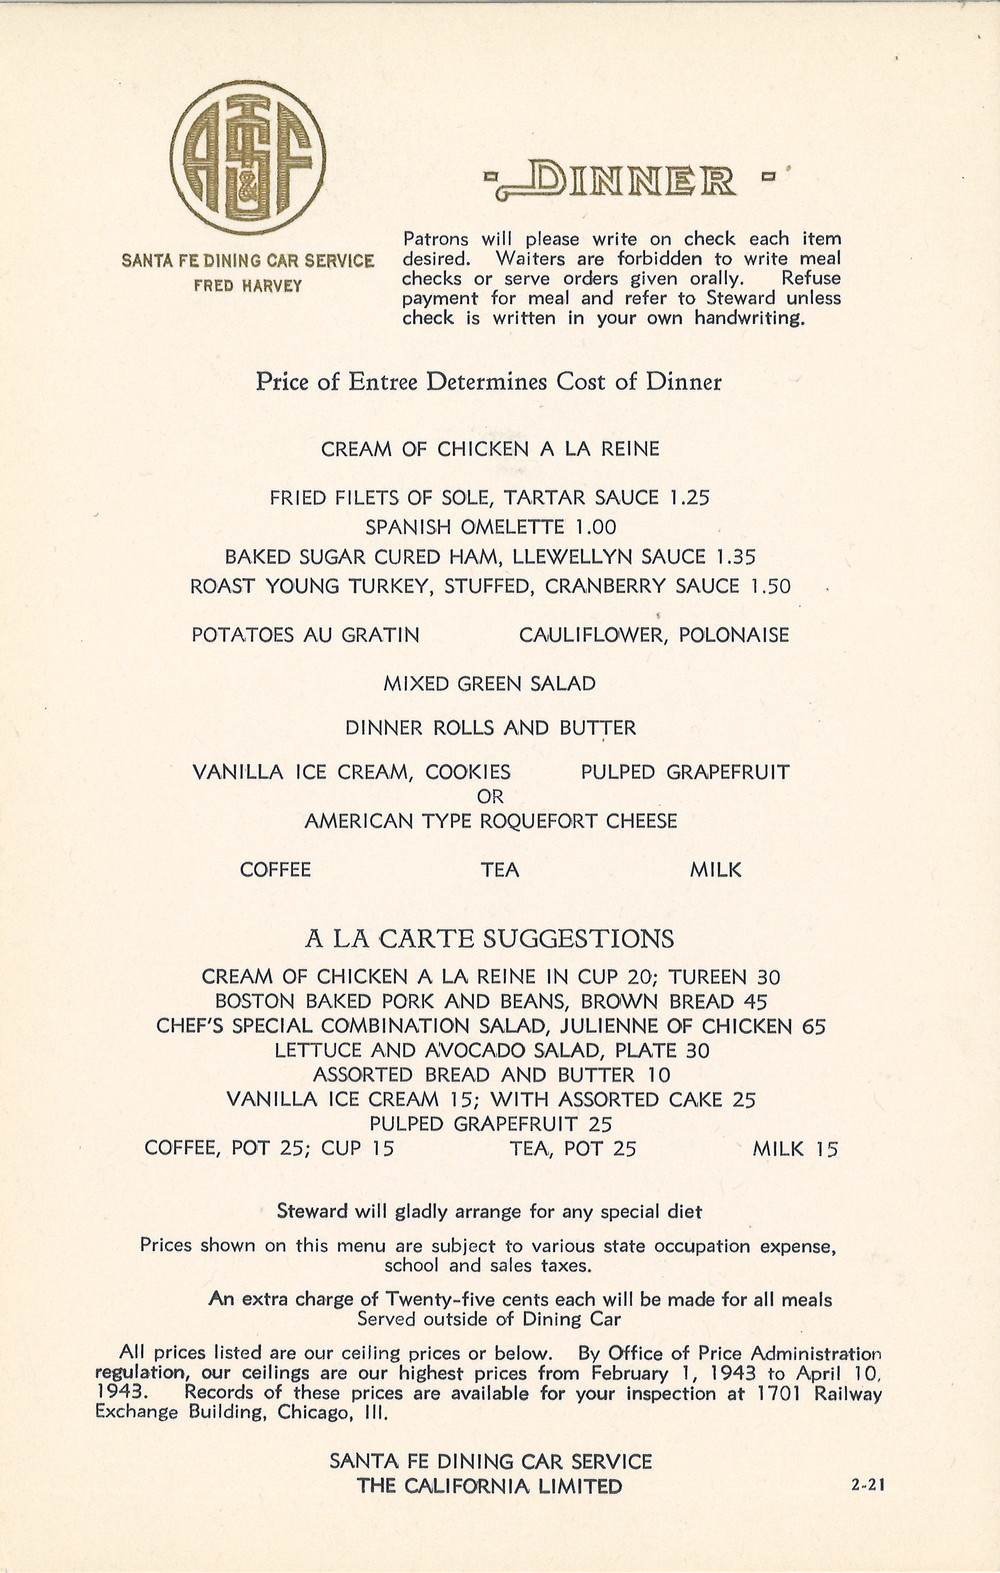 Santa Fe California Limited Dinner Menu.jpg